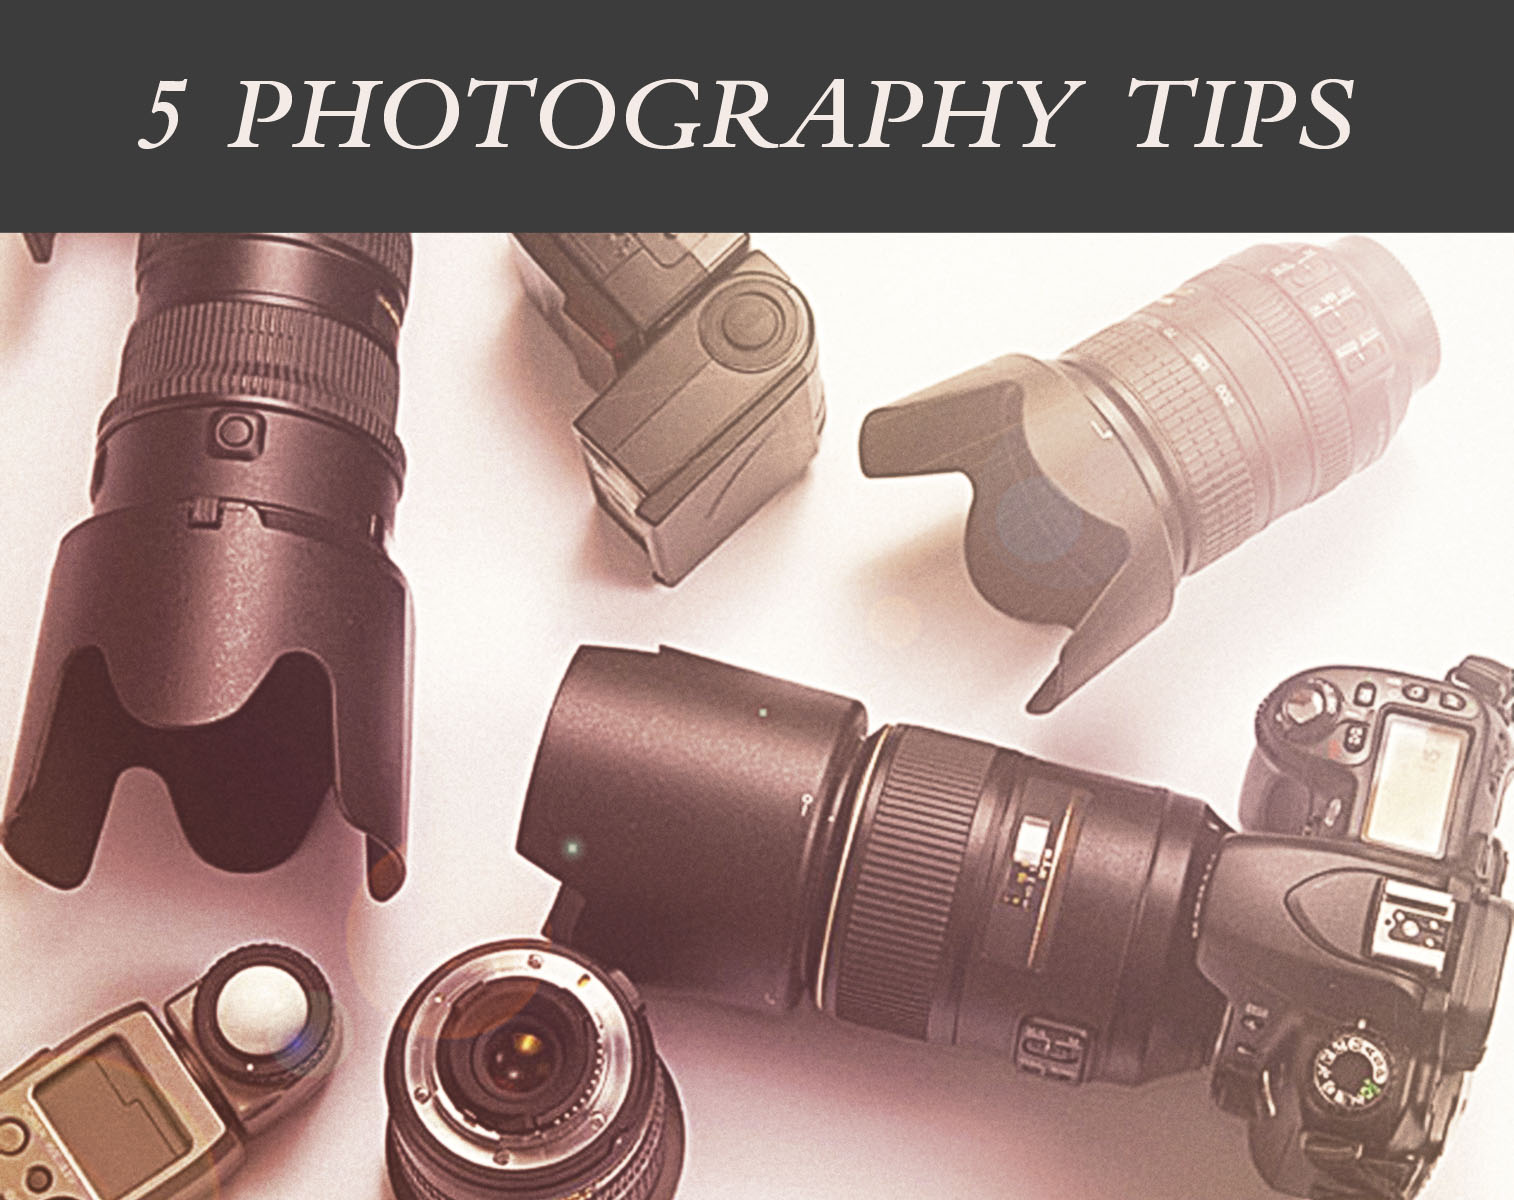 The best Photography tips